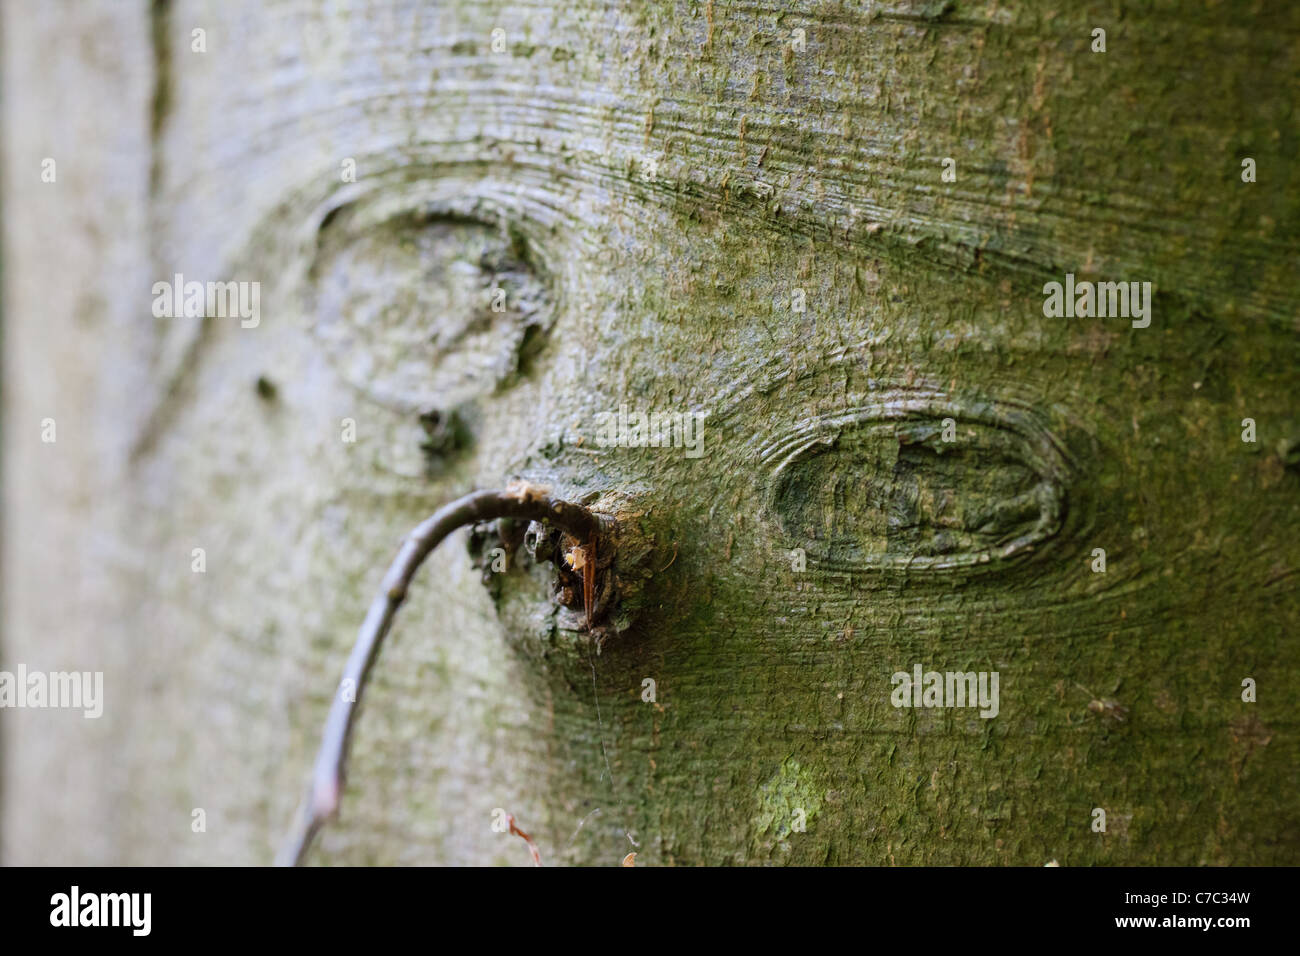 A strange face in the bark of a tree Stock Photo